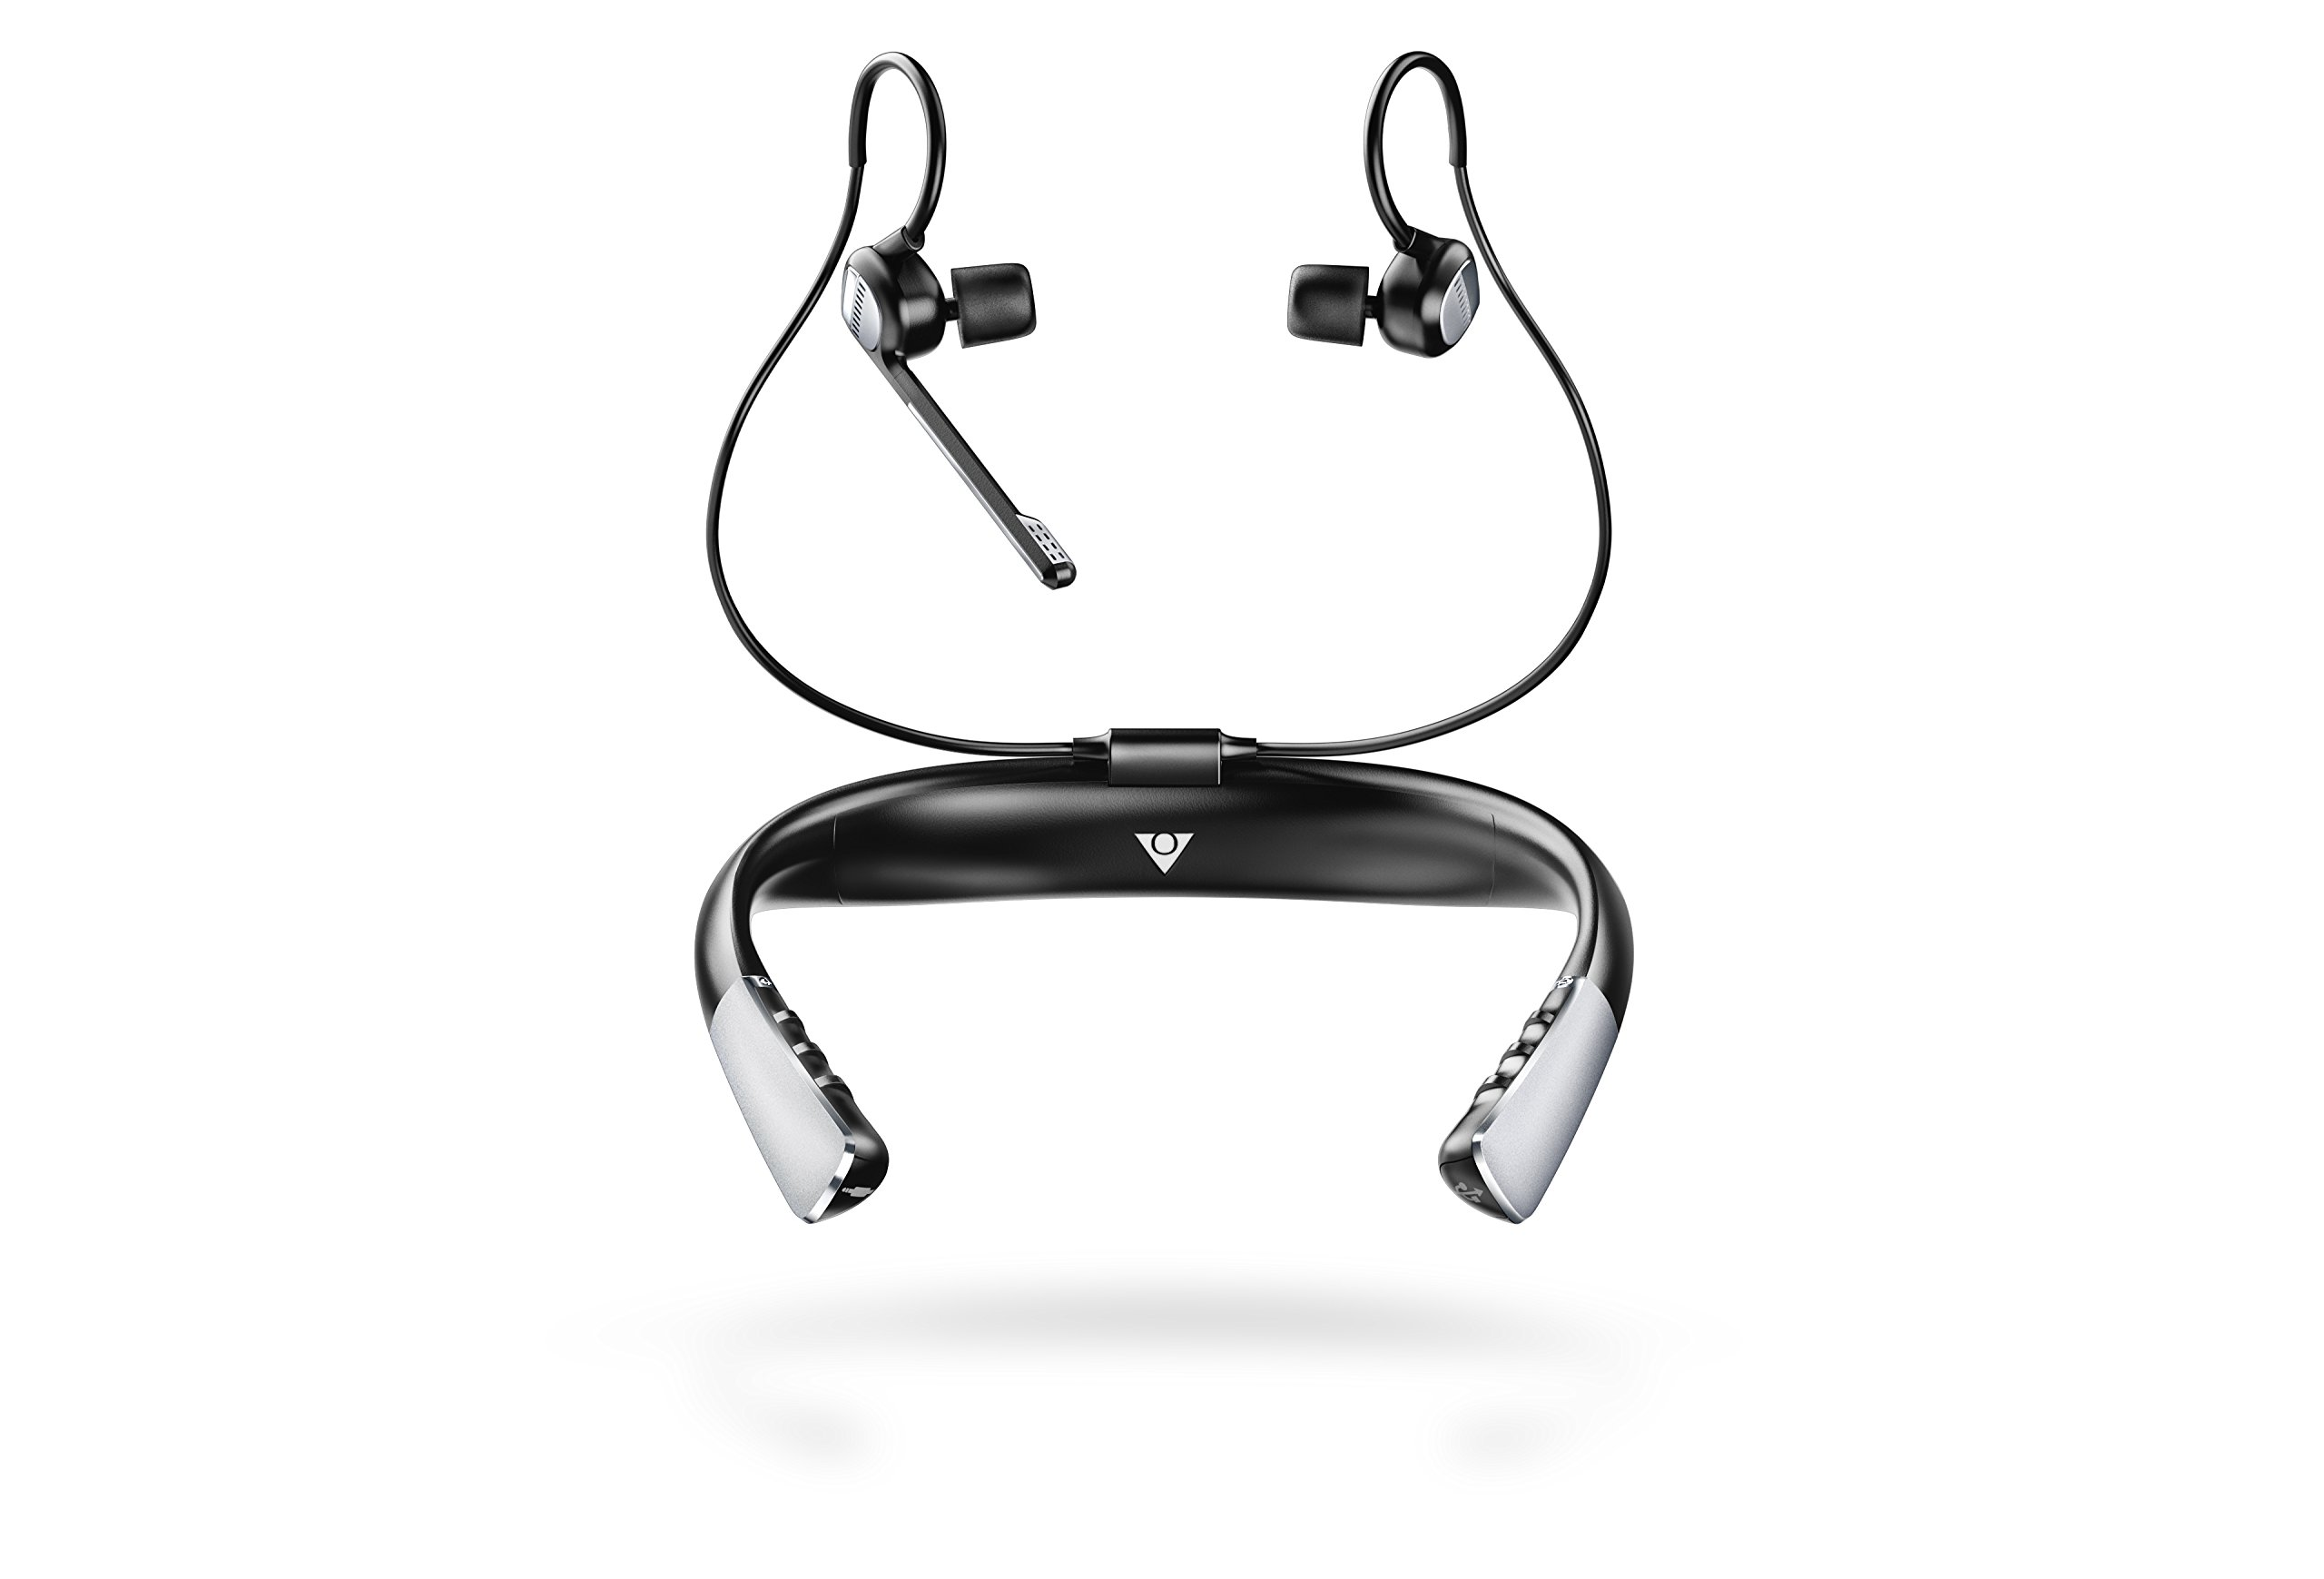 World's Most Advanced Headphones for Professionals On-The-Go, with Superior Calls, Sound, and Voice Commands